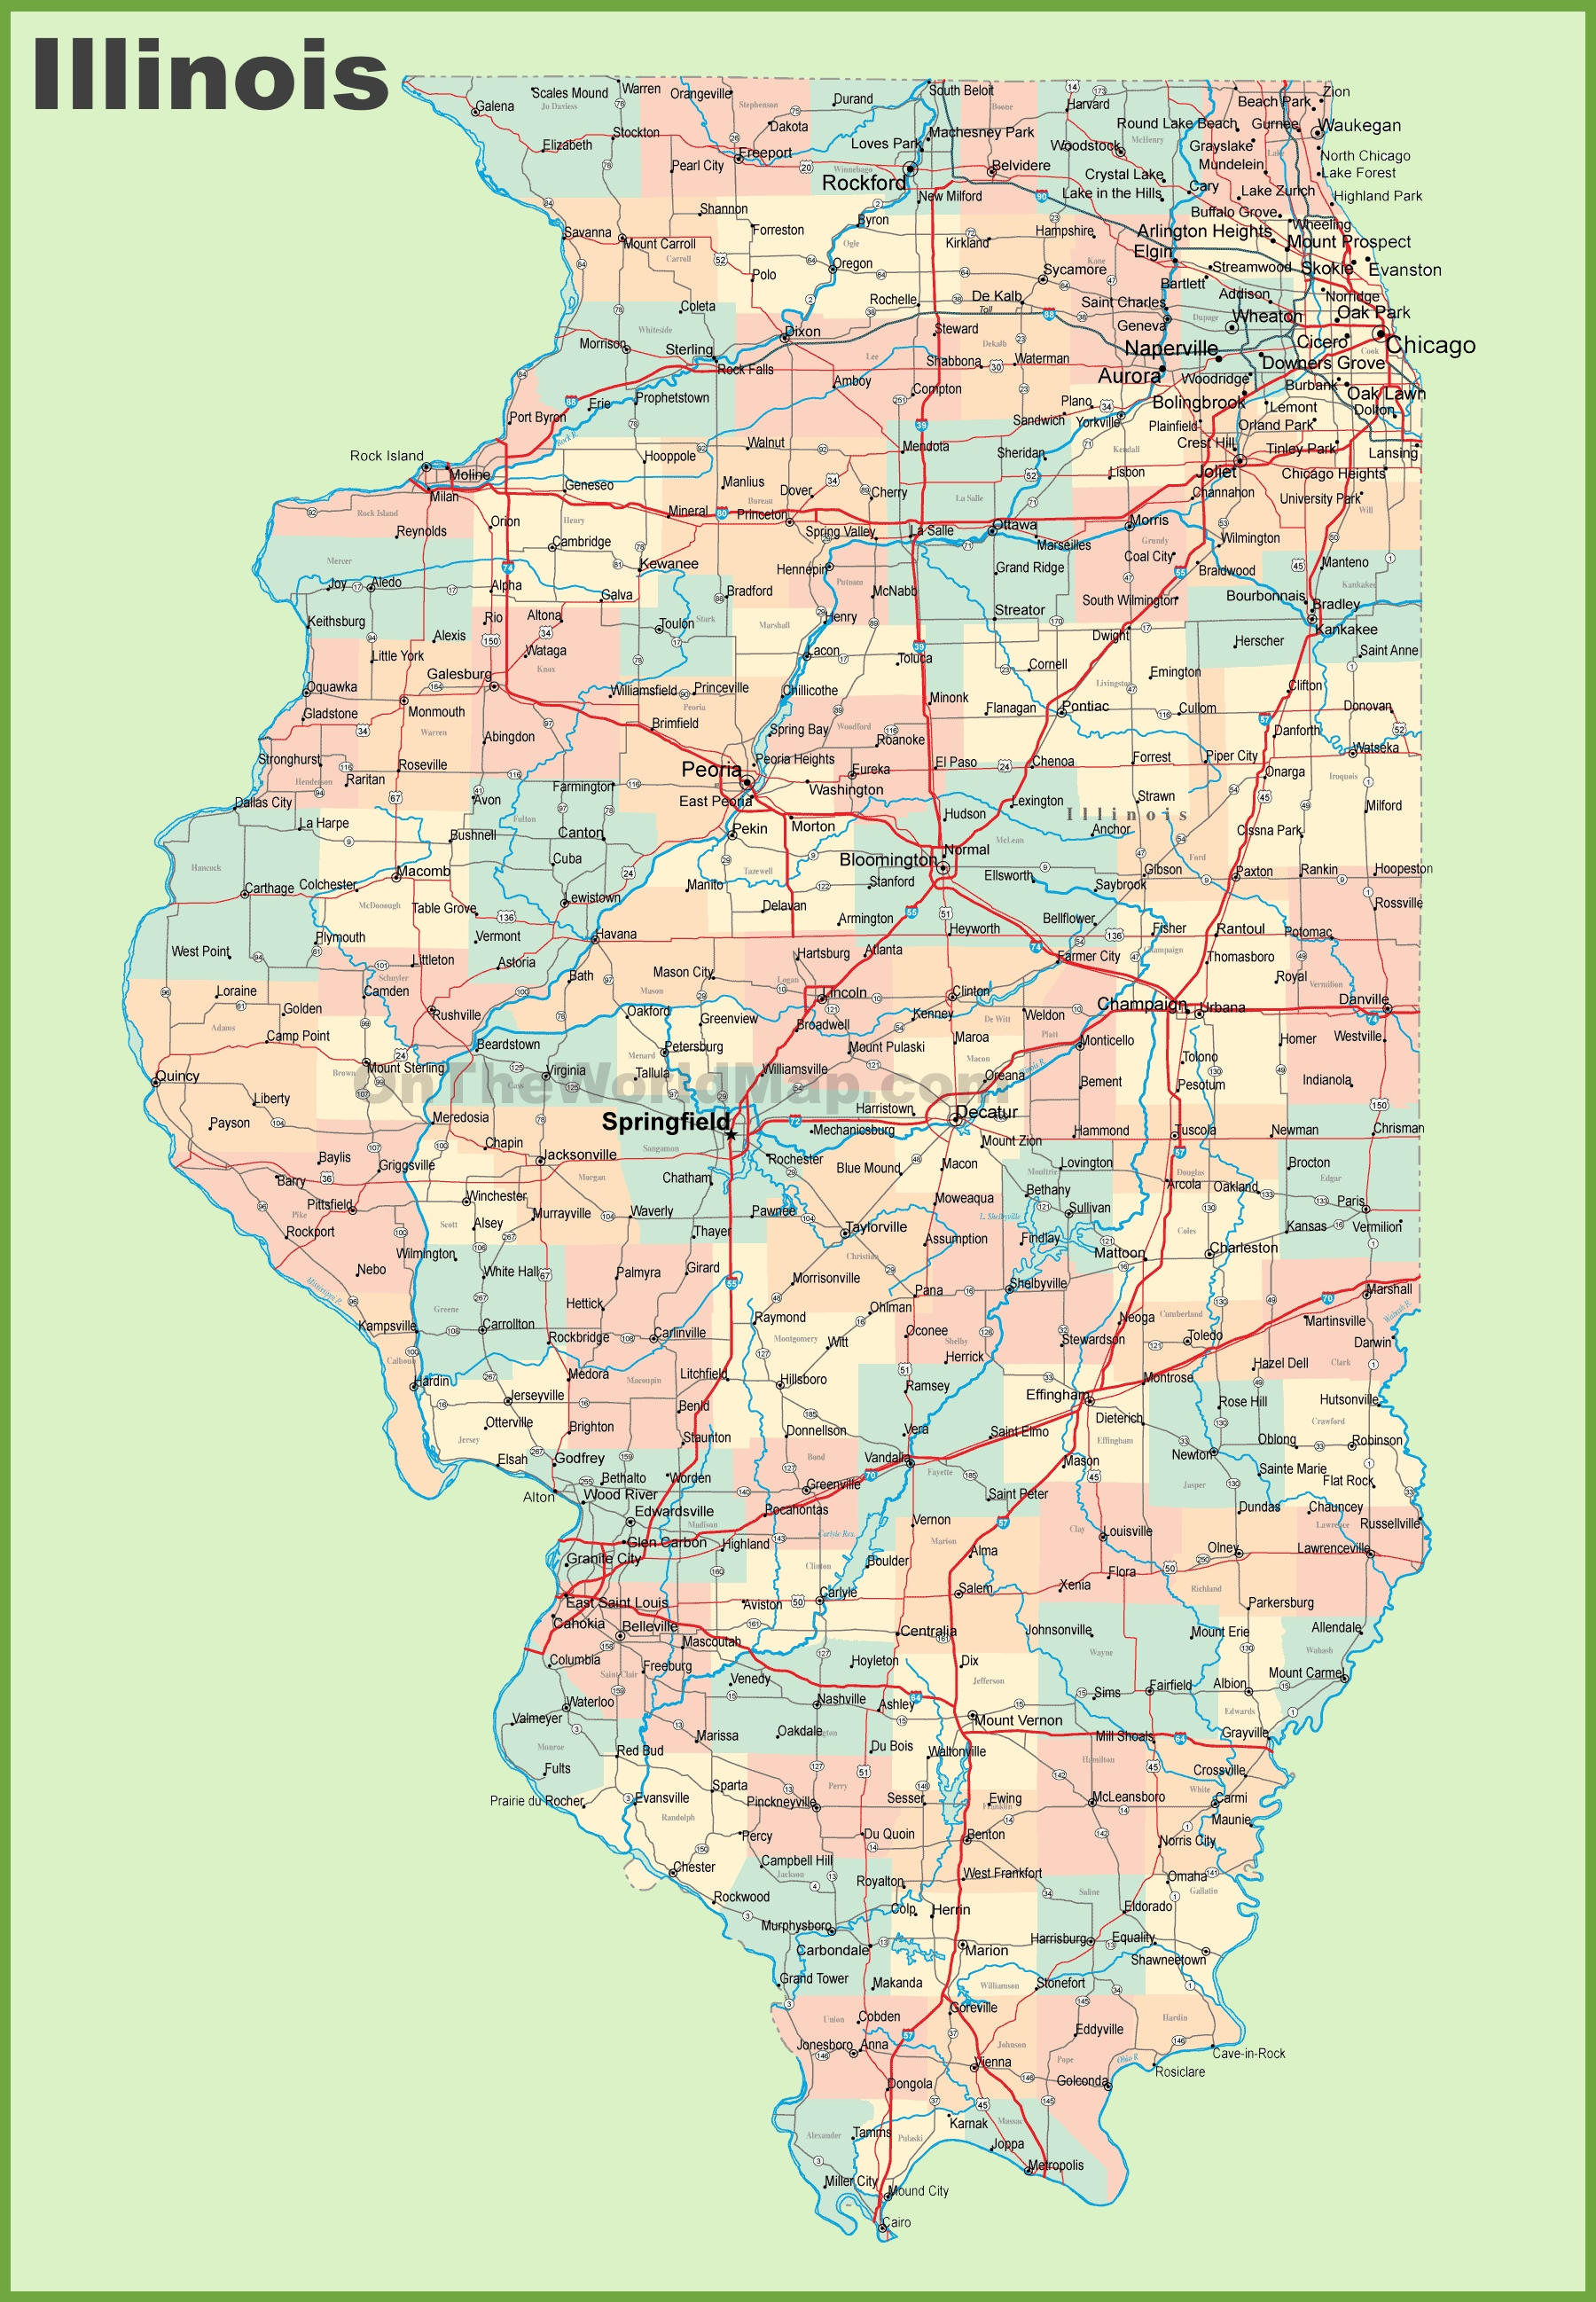 Illinois State Map With Cities Map of Illinois with cities and towns